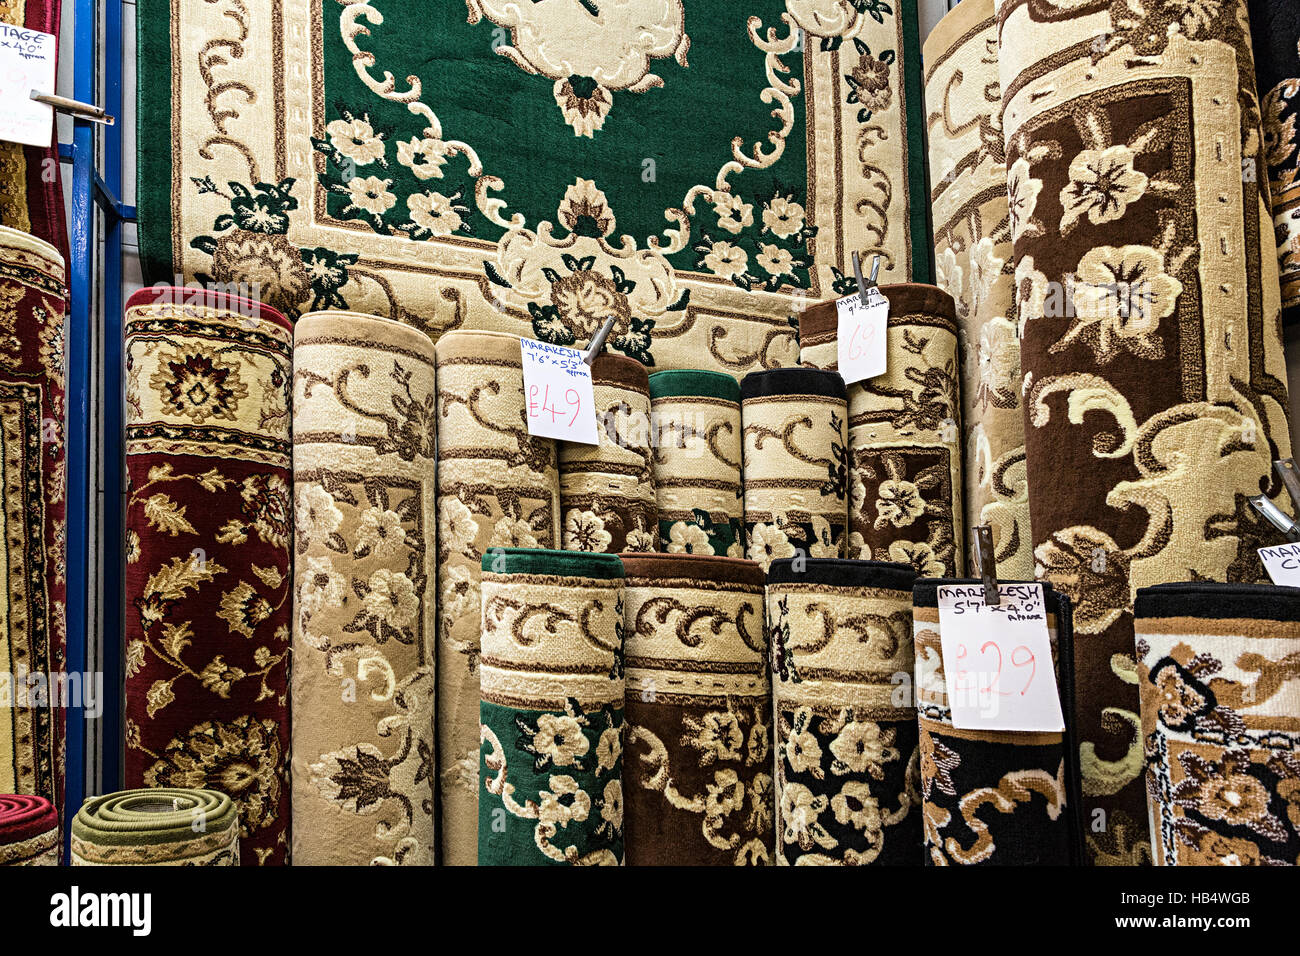 Rugs for sale in shop, Hereford, England, UK - Stock Image